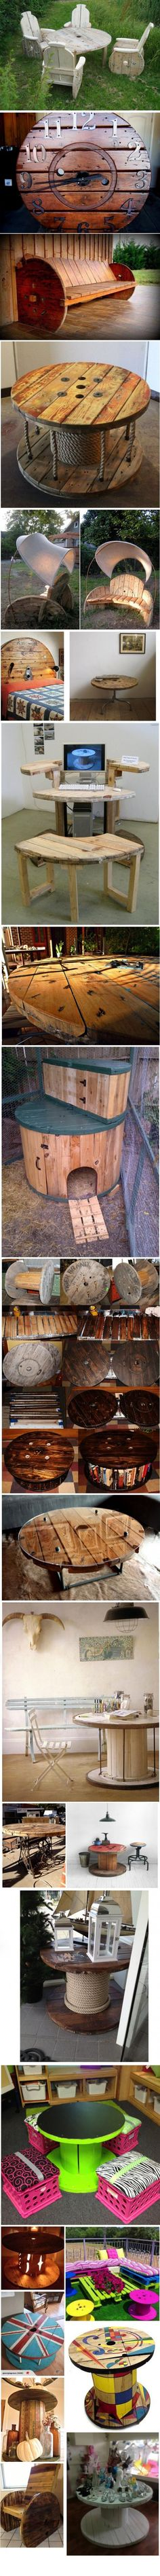 Ideas for repurposing a wire spool